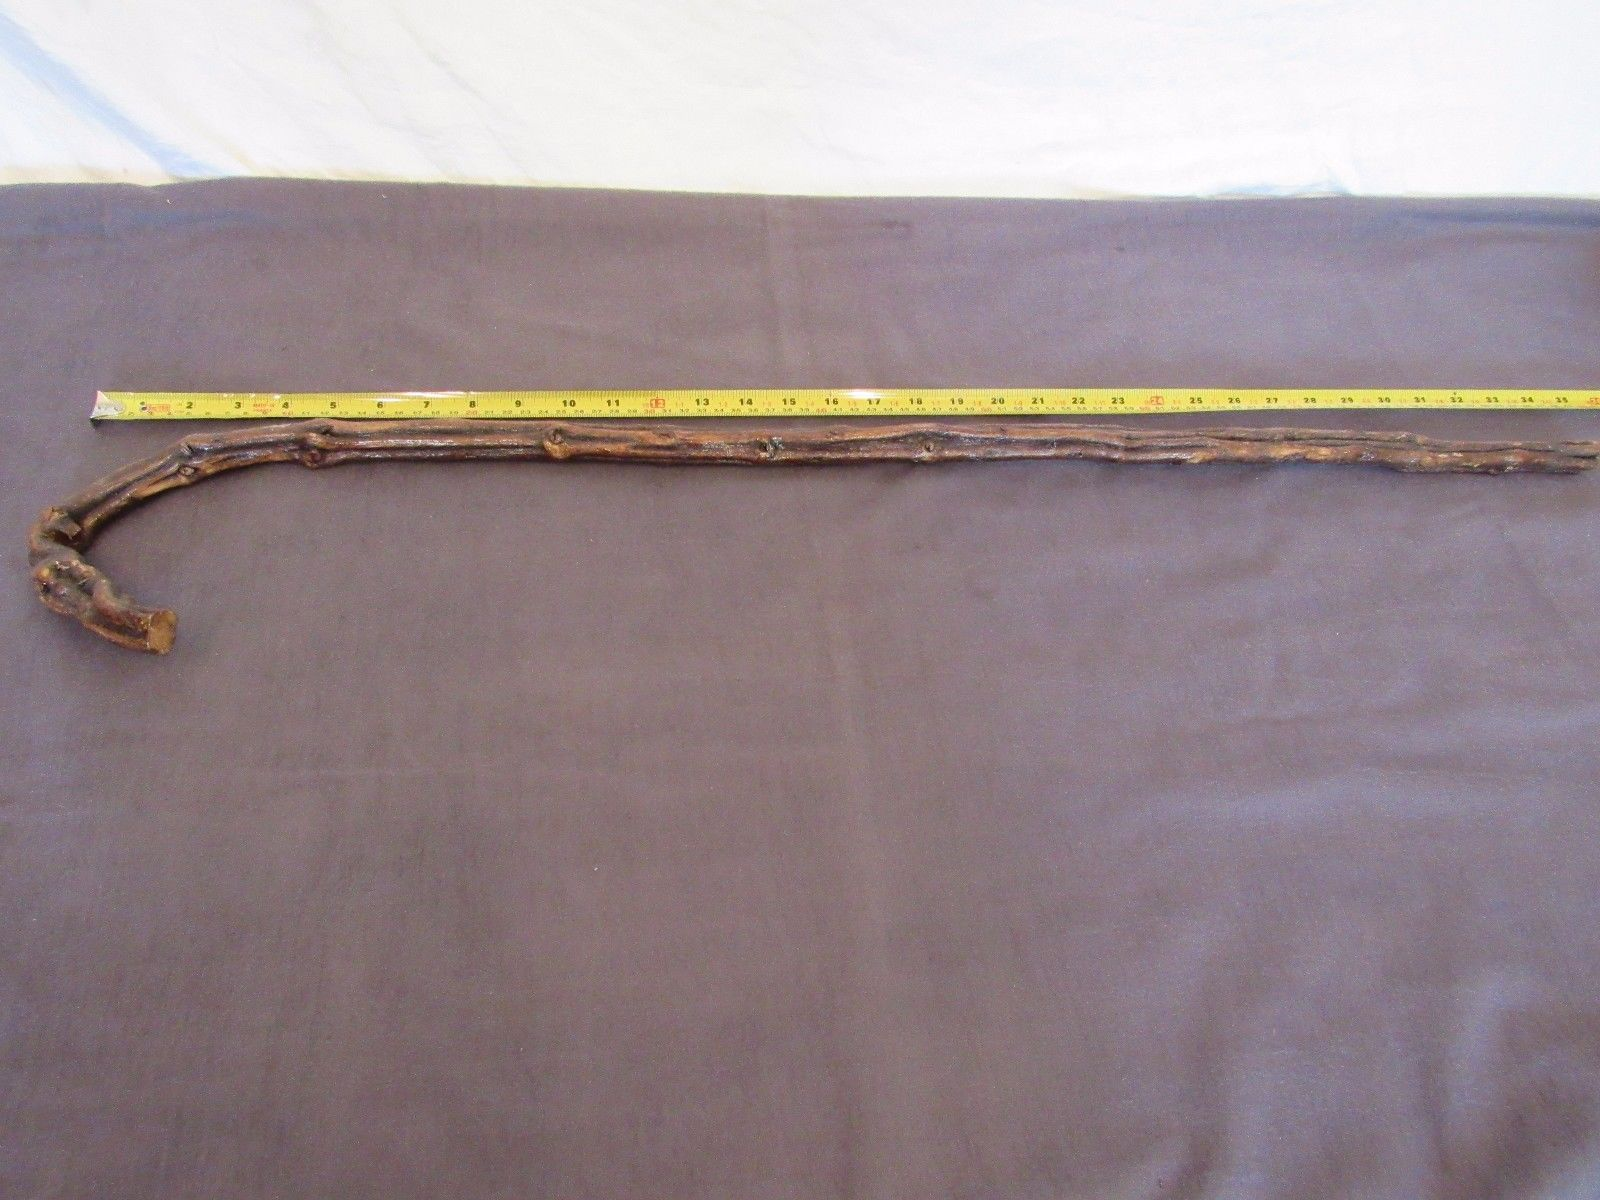 VTG Bent Wood Root Vine Walking Stick Costume Party Accessory  Prop 35""